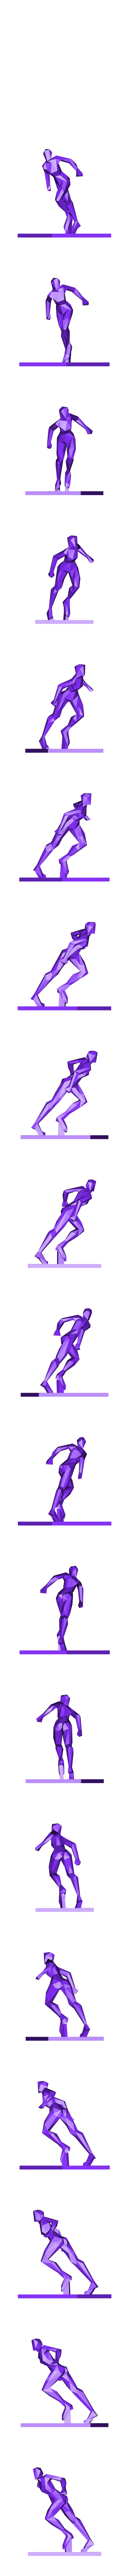 women running stance.obj Download 3DS file woman pose • 3D printing object, formforge